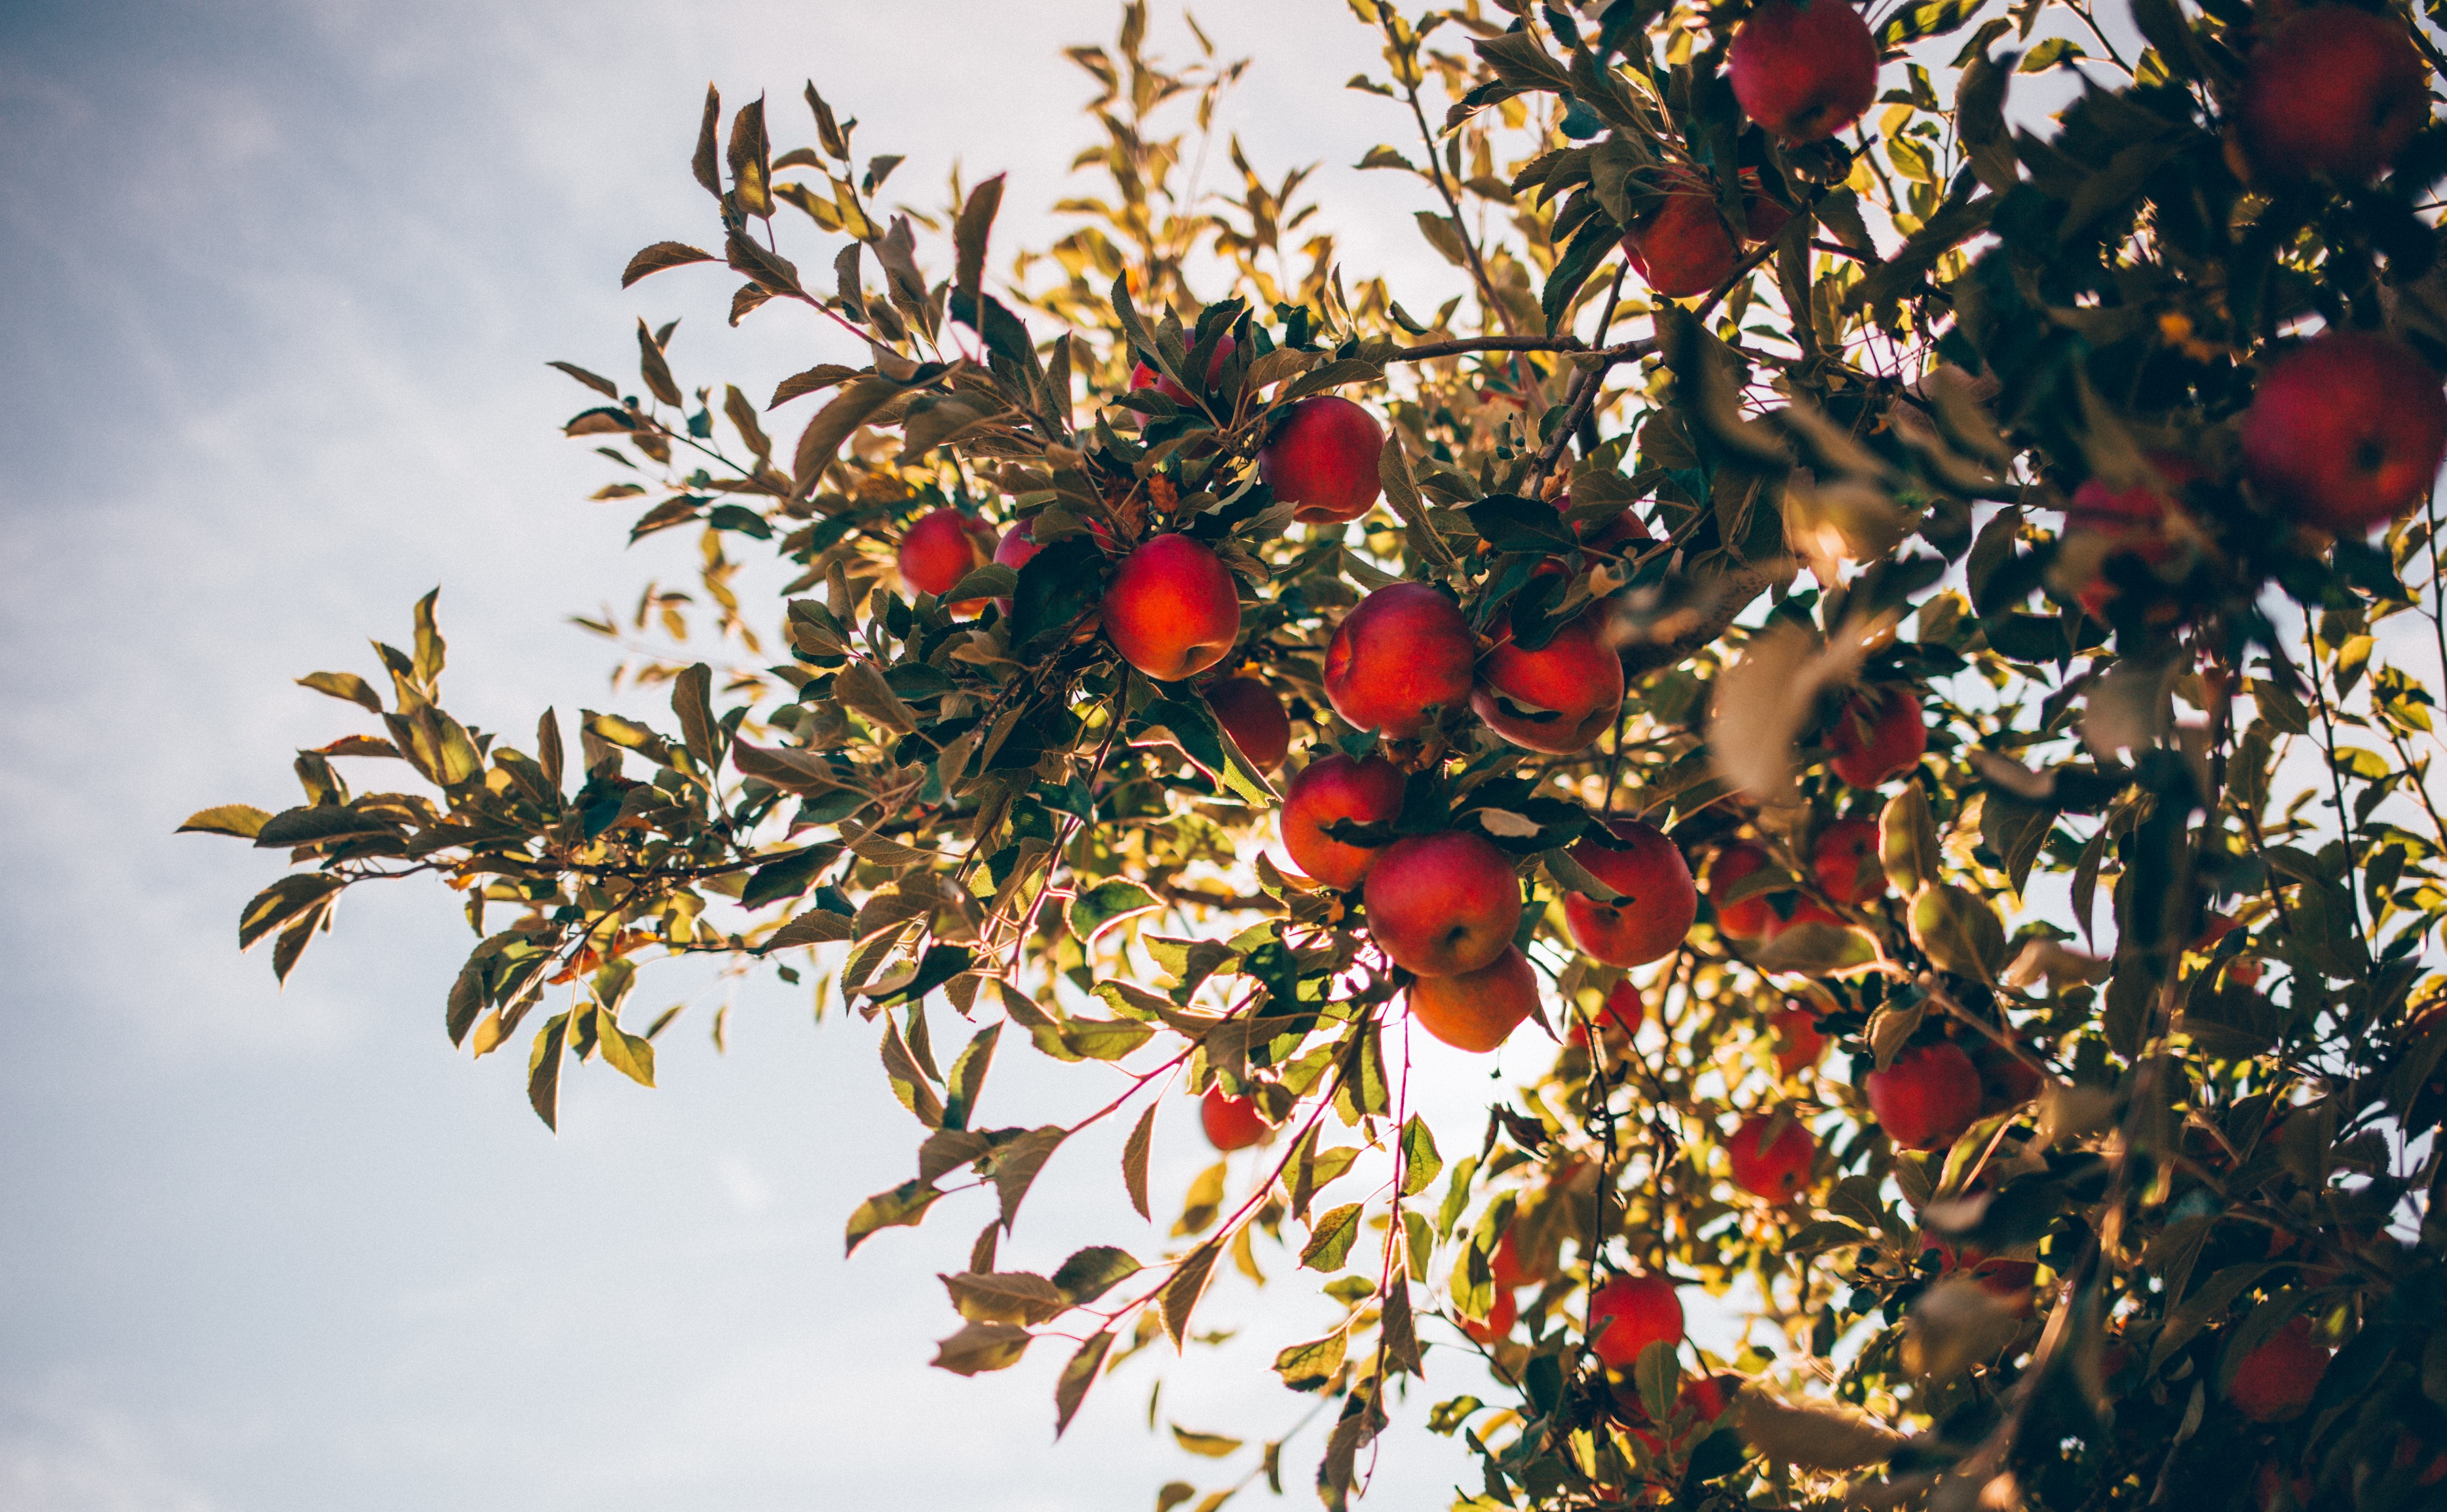 apple tree over sun light and clouds